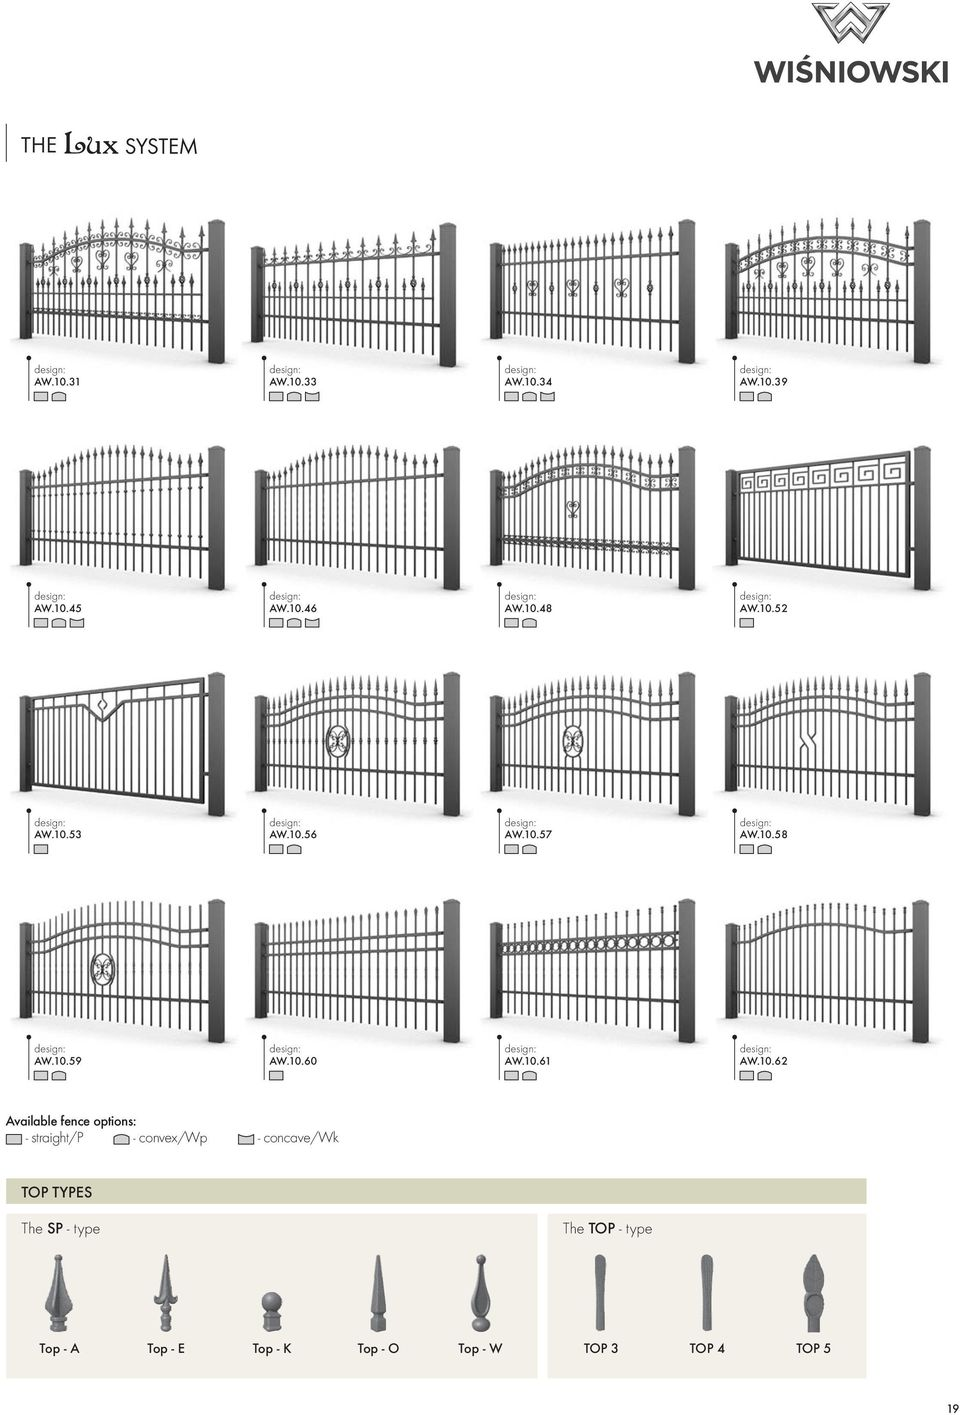 10.62 Available fence options: - straight/p - convex/wp - concave/wk TOP TYPES The SP -